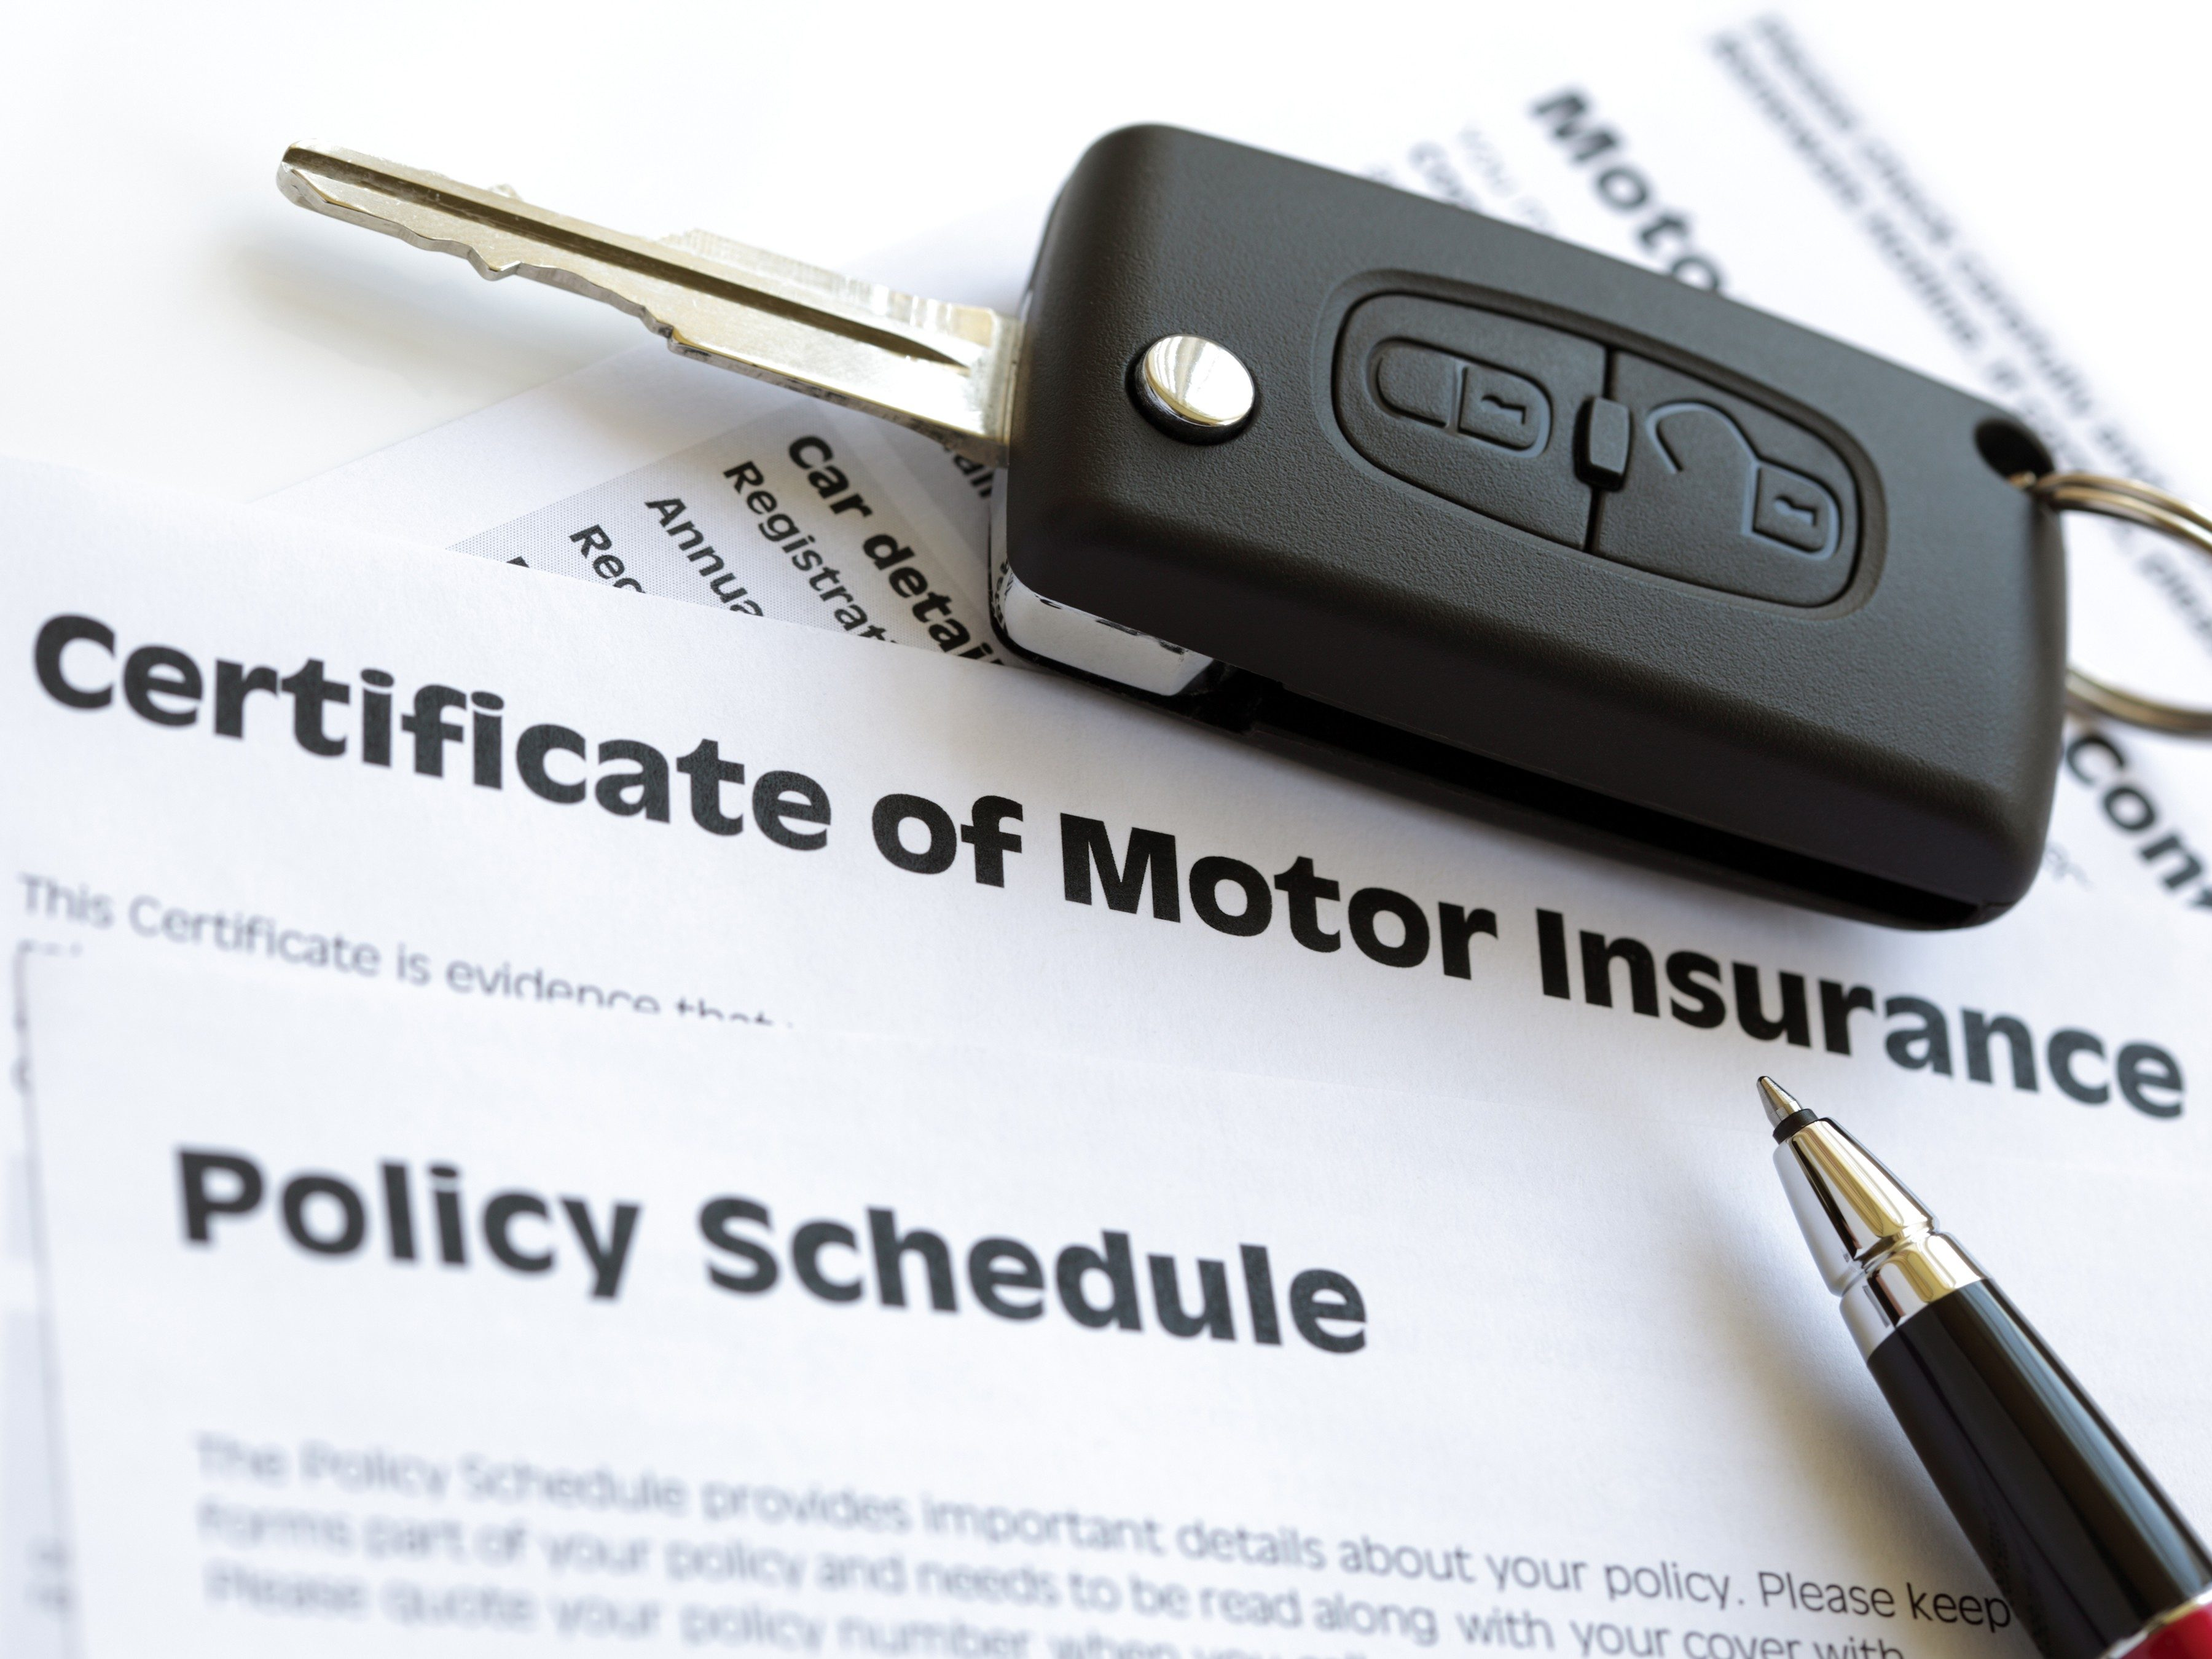 1. It pays to compare car insurance policies-and car insurance providers.